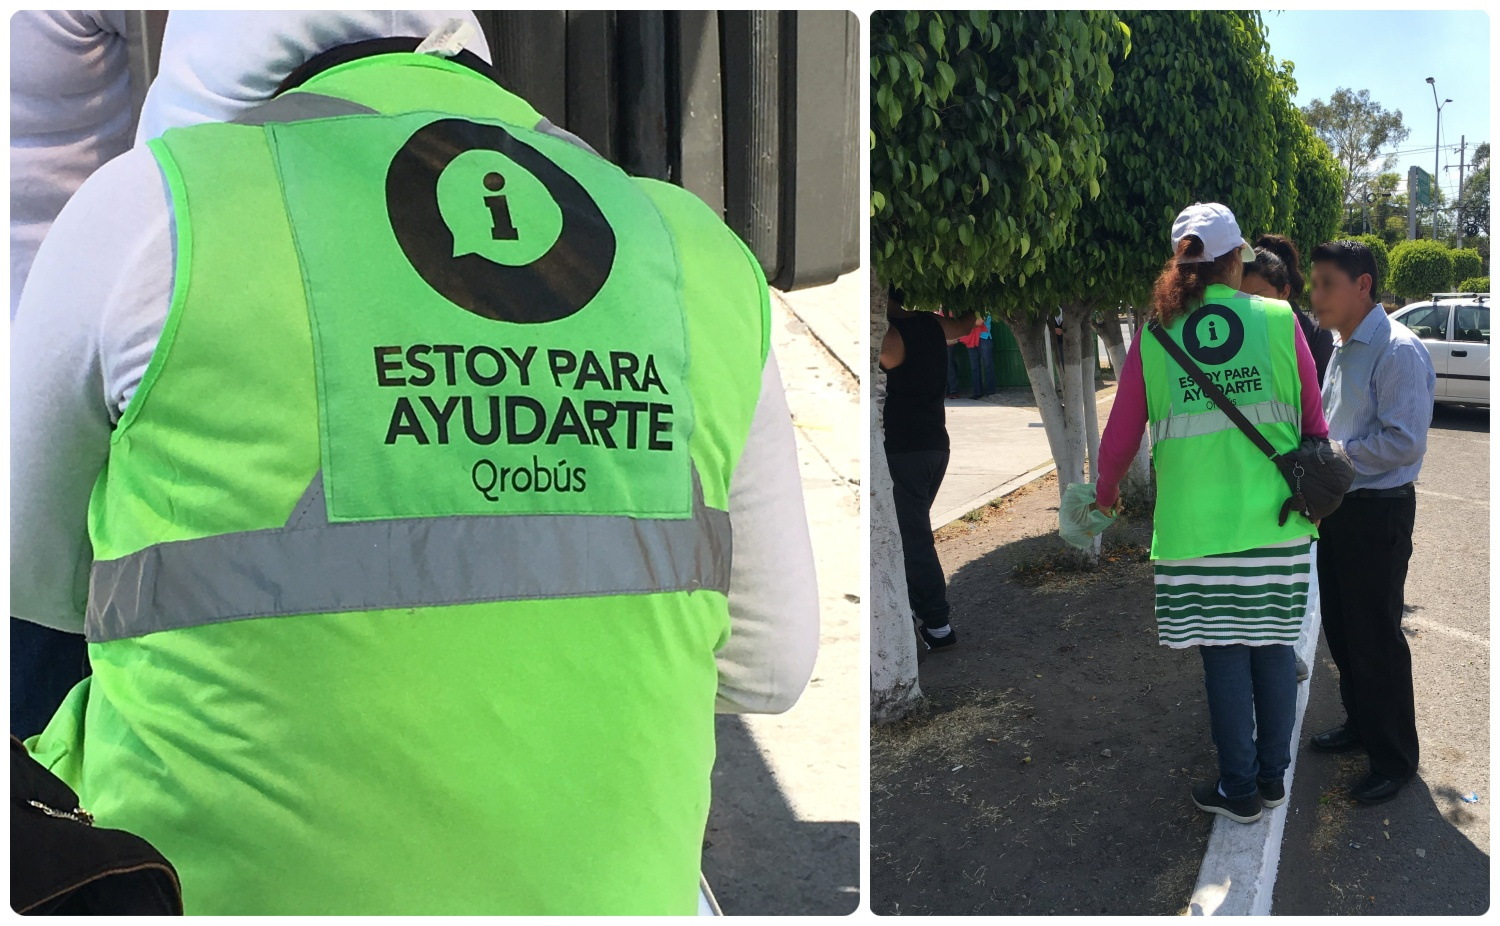 """Look for the attendants at bus stops wearing bright green vests that say """" Estoy para Ayudarte """" to get transportation help and reload your QROBus card. Santiago de Queretaro, Mexico"""